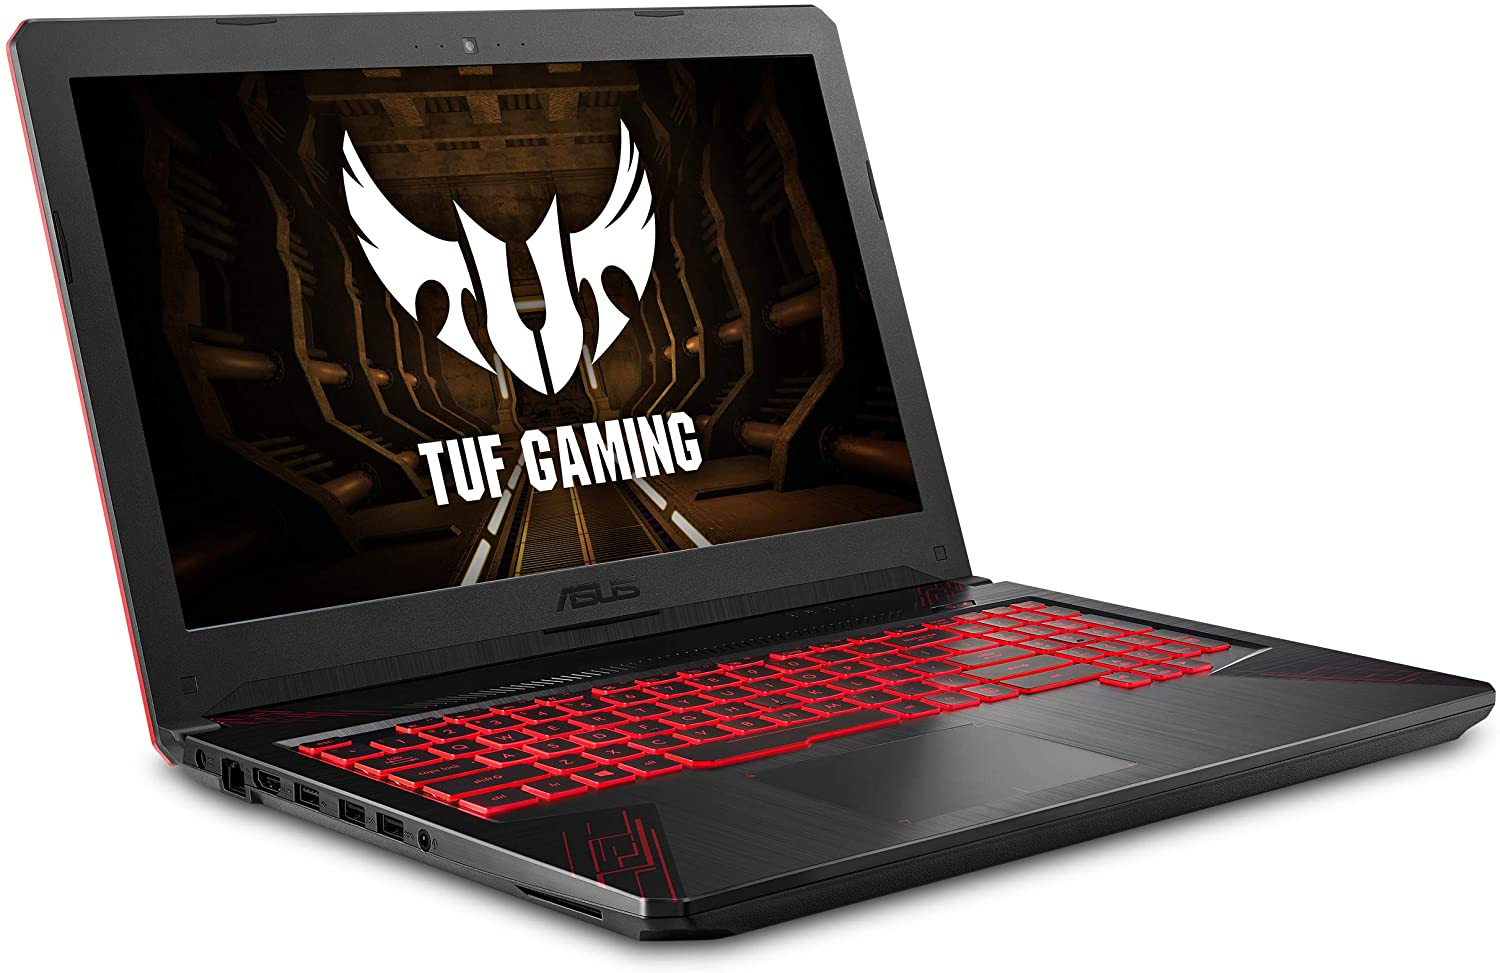 Amazon Com Asus Tuf Thin Light Gaming Laptop Pc Fx504 15 6 Full Hd 8th Gen Intel Core I5 8300h Up To 3 9ghz Geforce Gtx 1050 2gb 8gb Ddr4 2666 Mhz 1tb Firecuda Sshd Windows